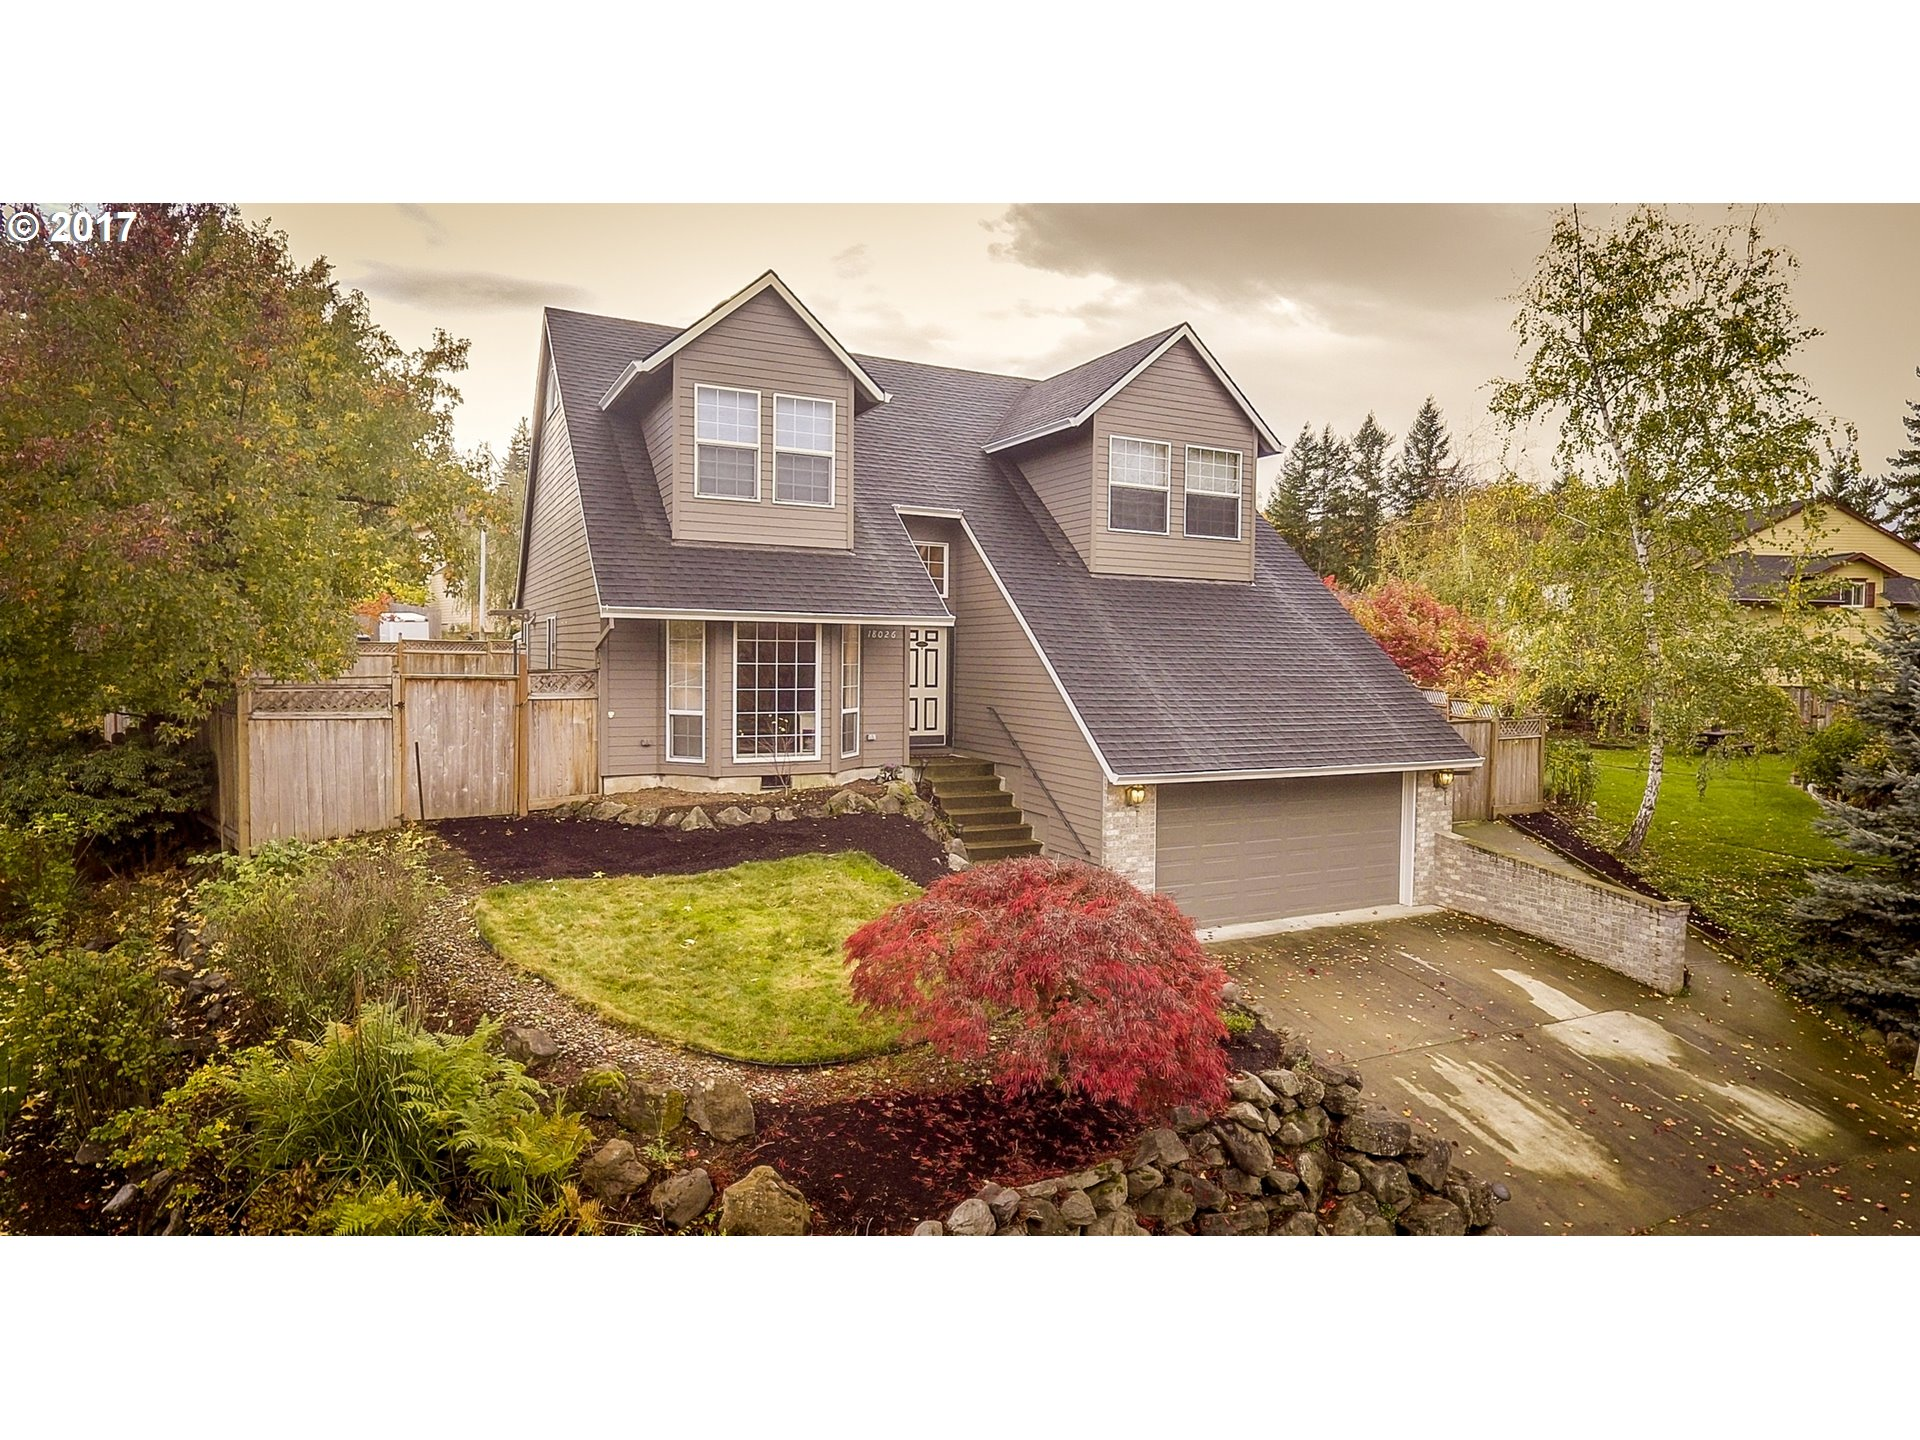 18026 CHICKAREE DR, Oregon City, OR 97045